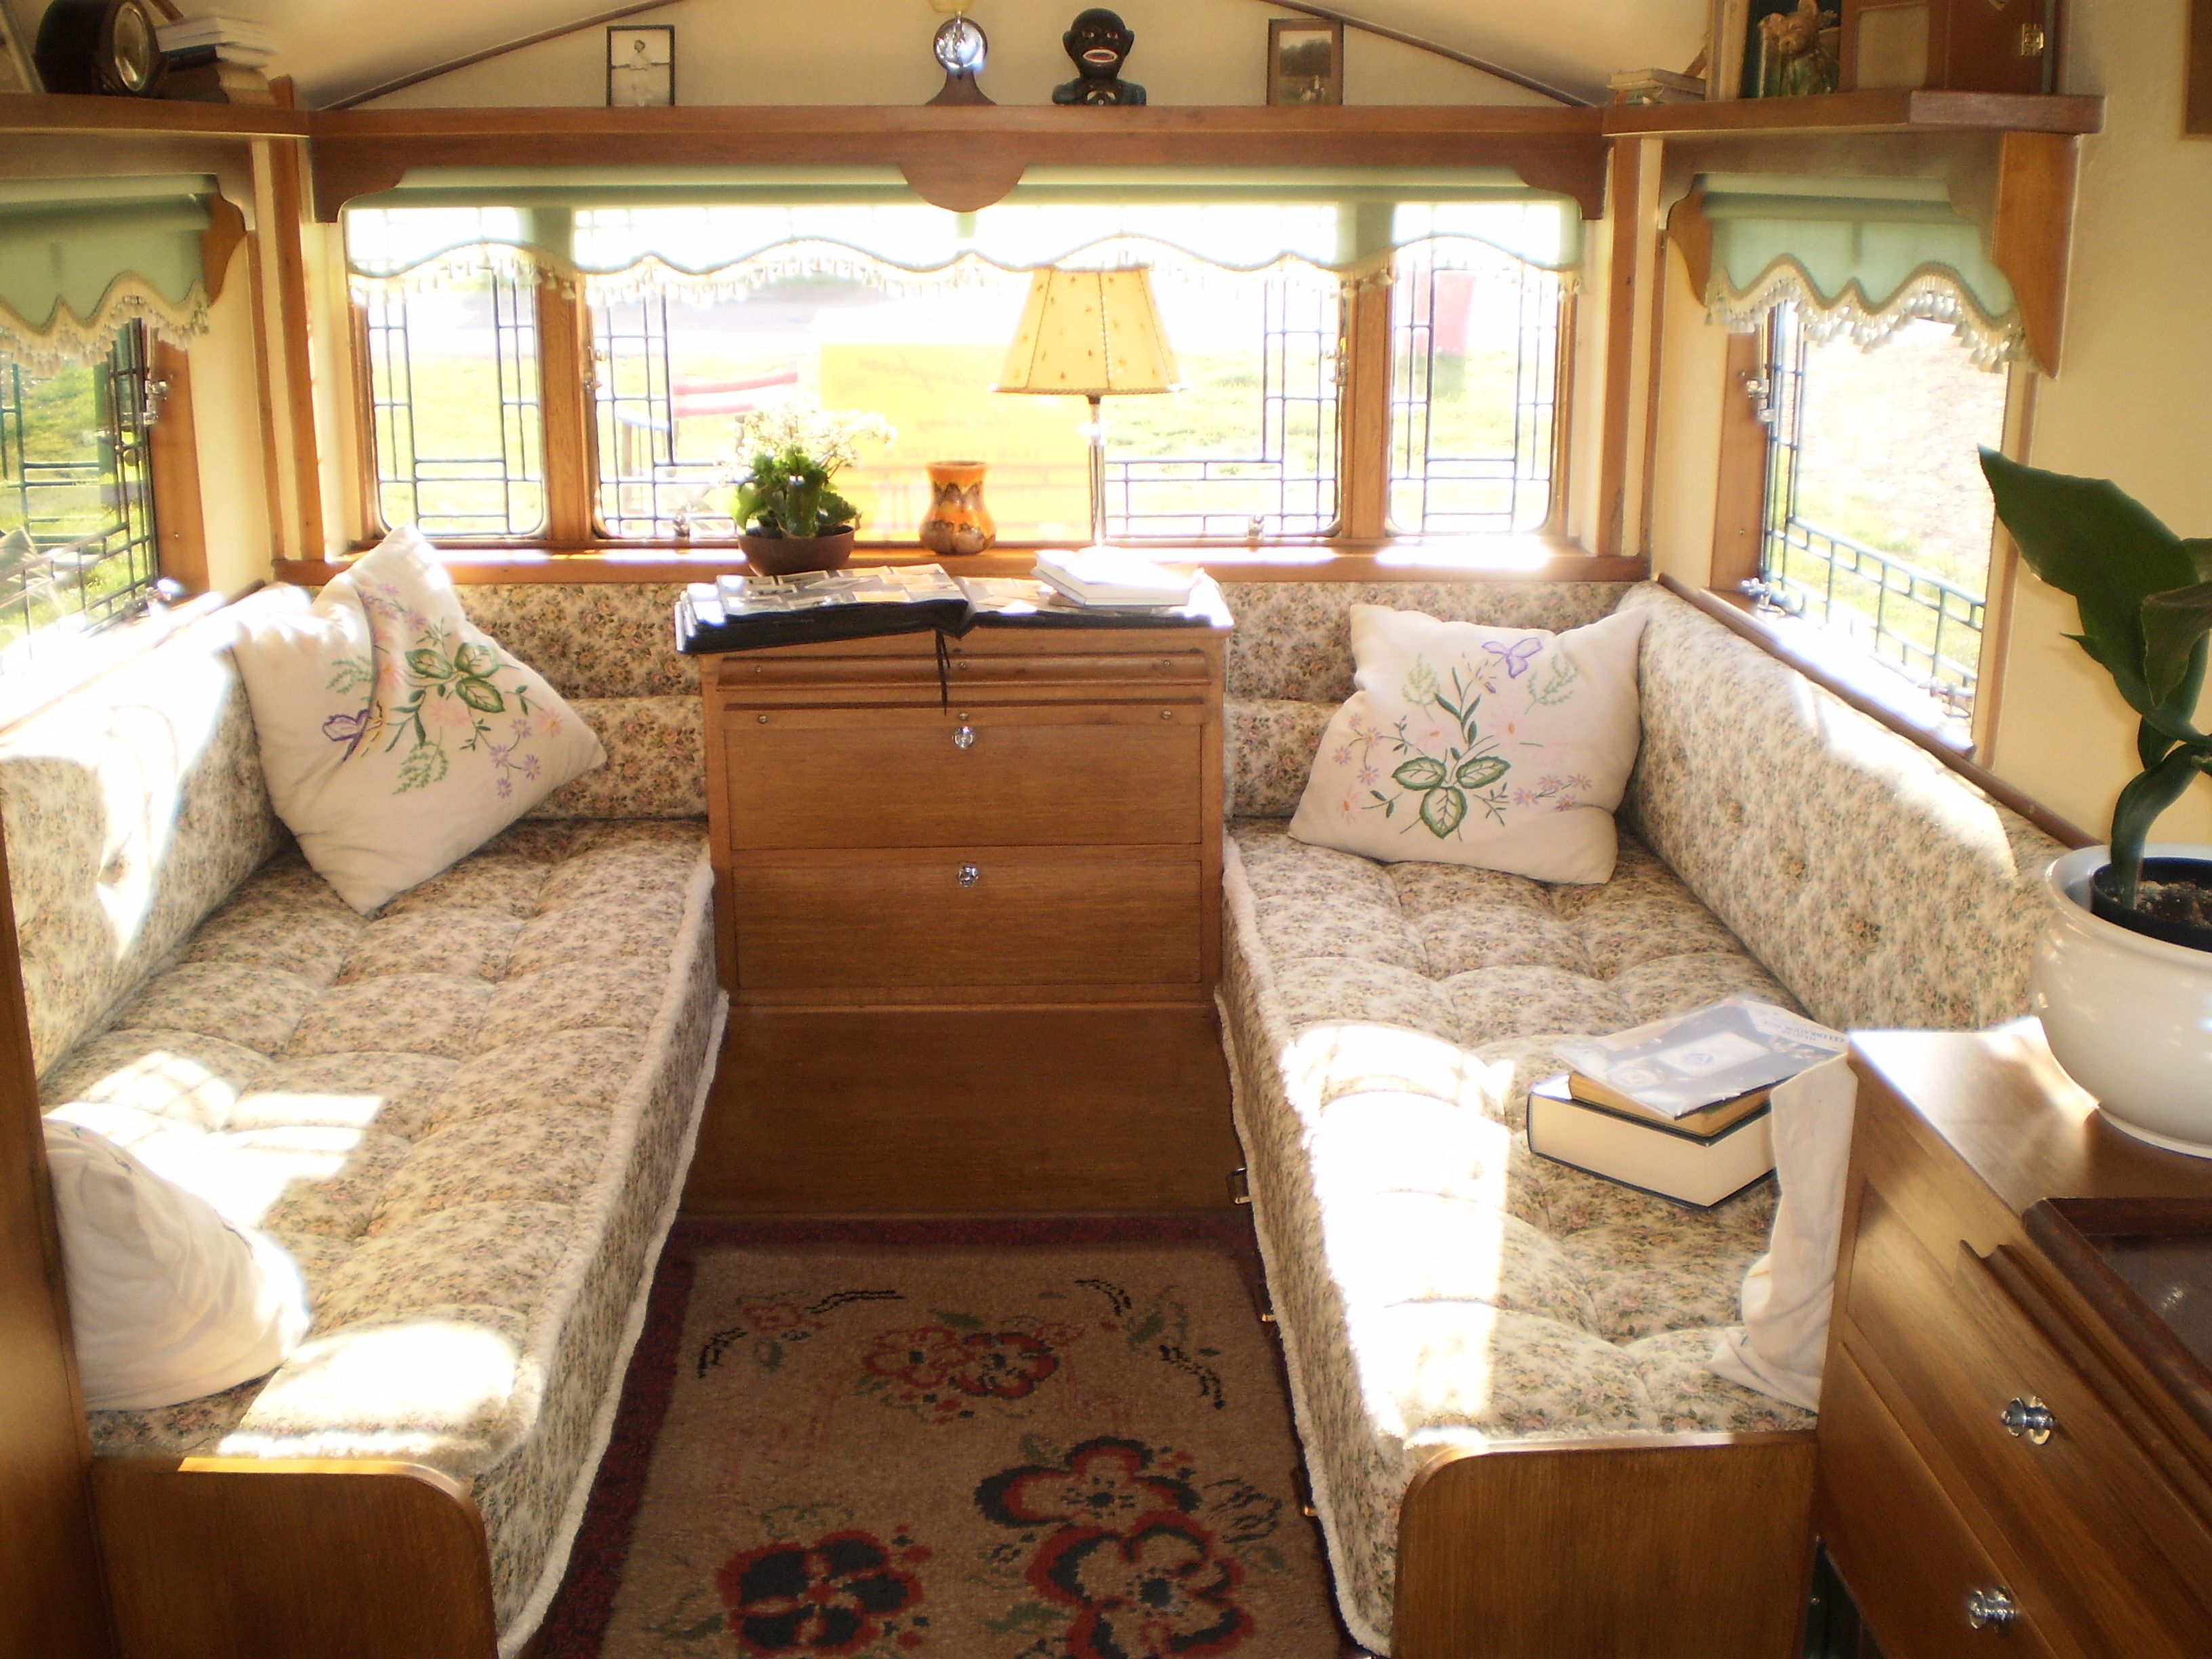 This is my 10 ft., 1955 Aljoa Sportsman done in a 1950's ...  |1950s Vintage Travel Trailers Inside